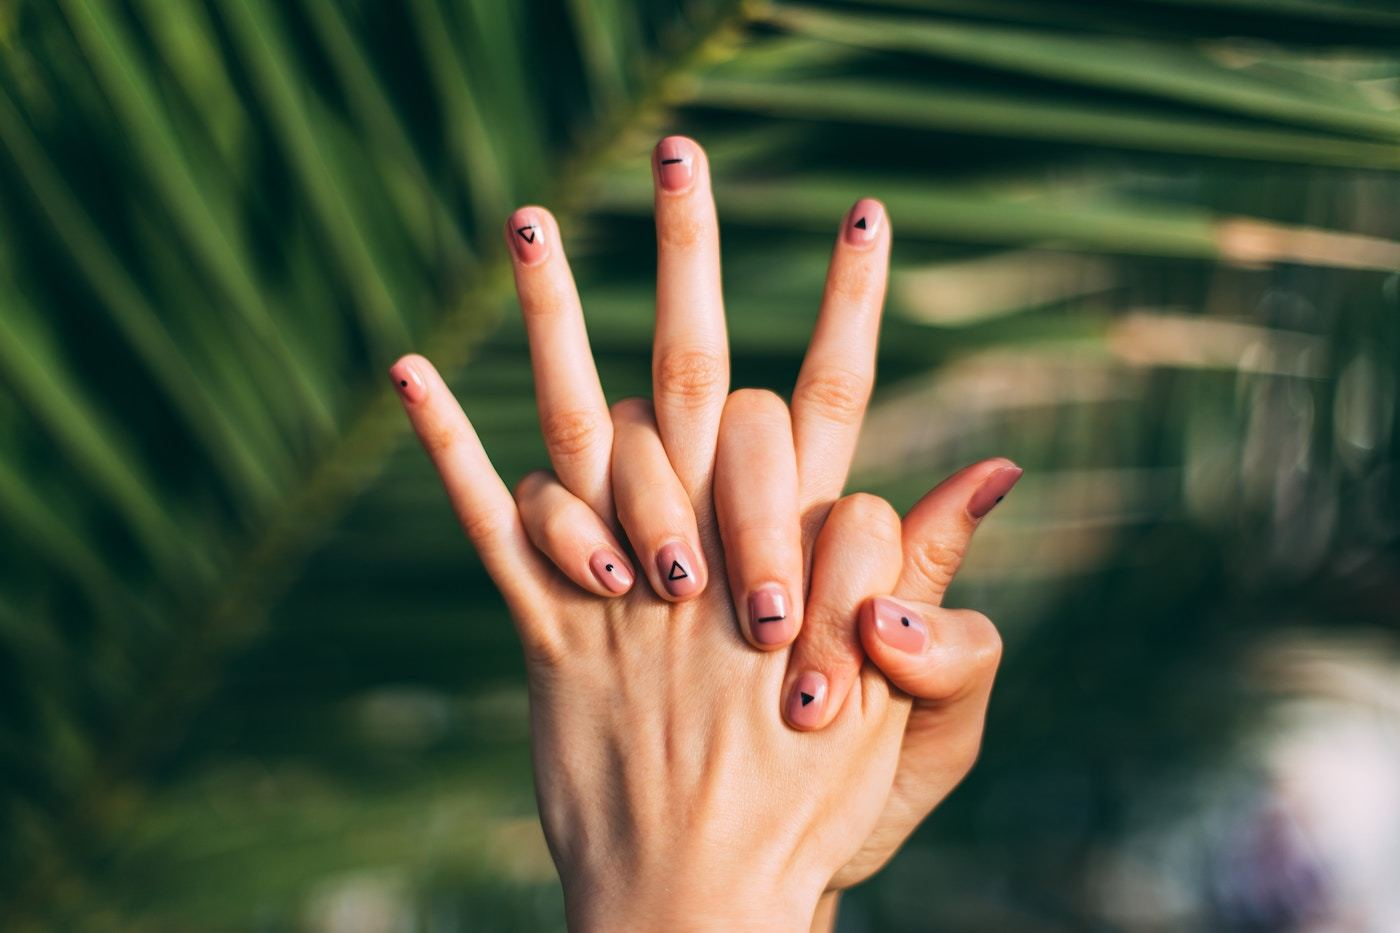 Thumbnail for 5 minimalist nail art designs you can do yourself in 15 seconds